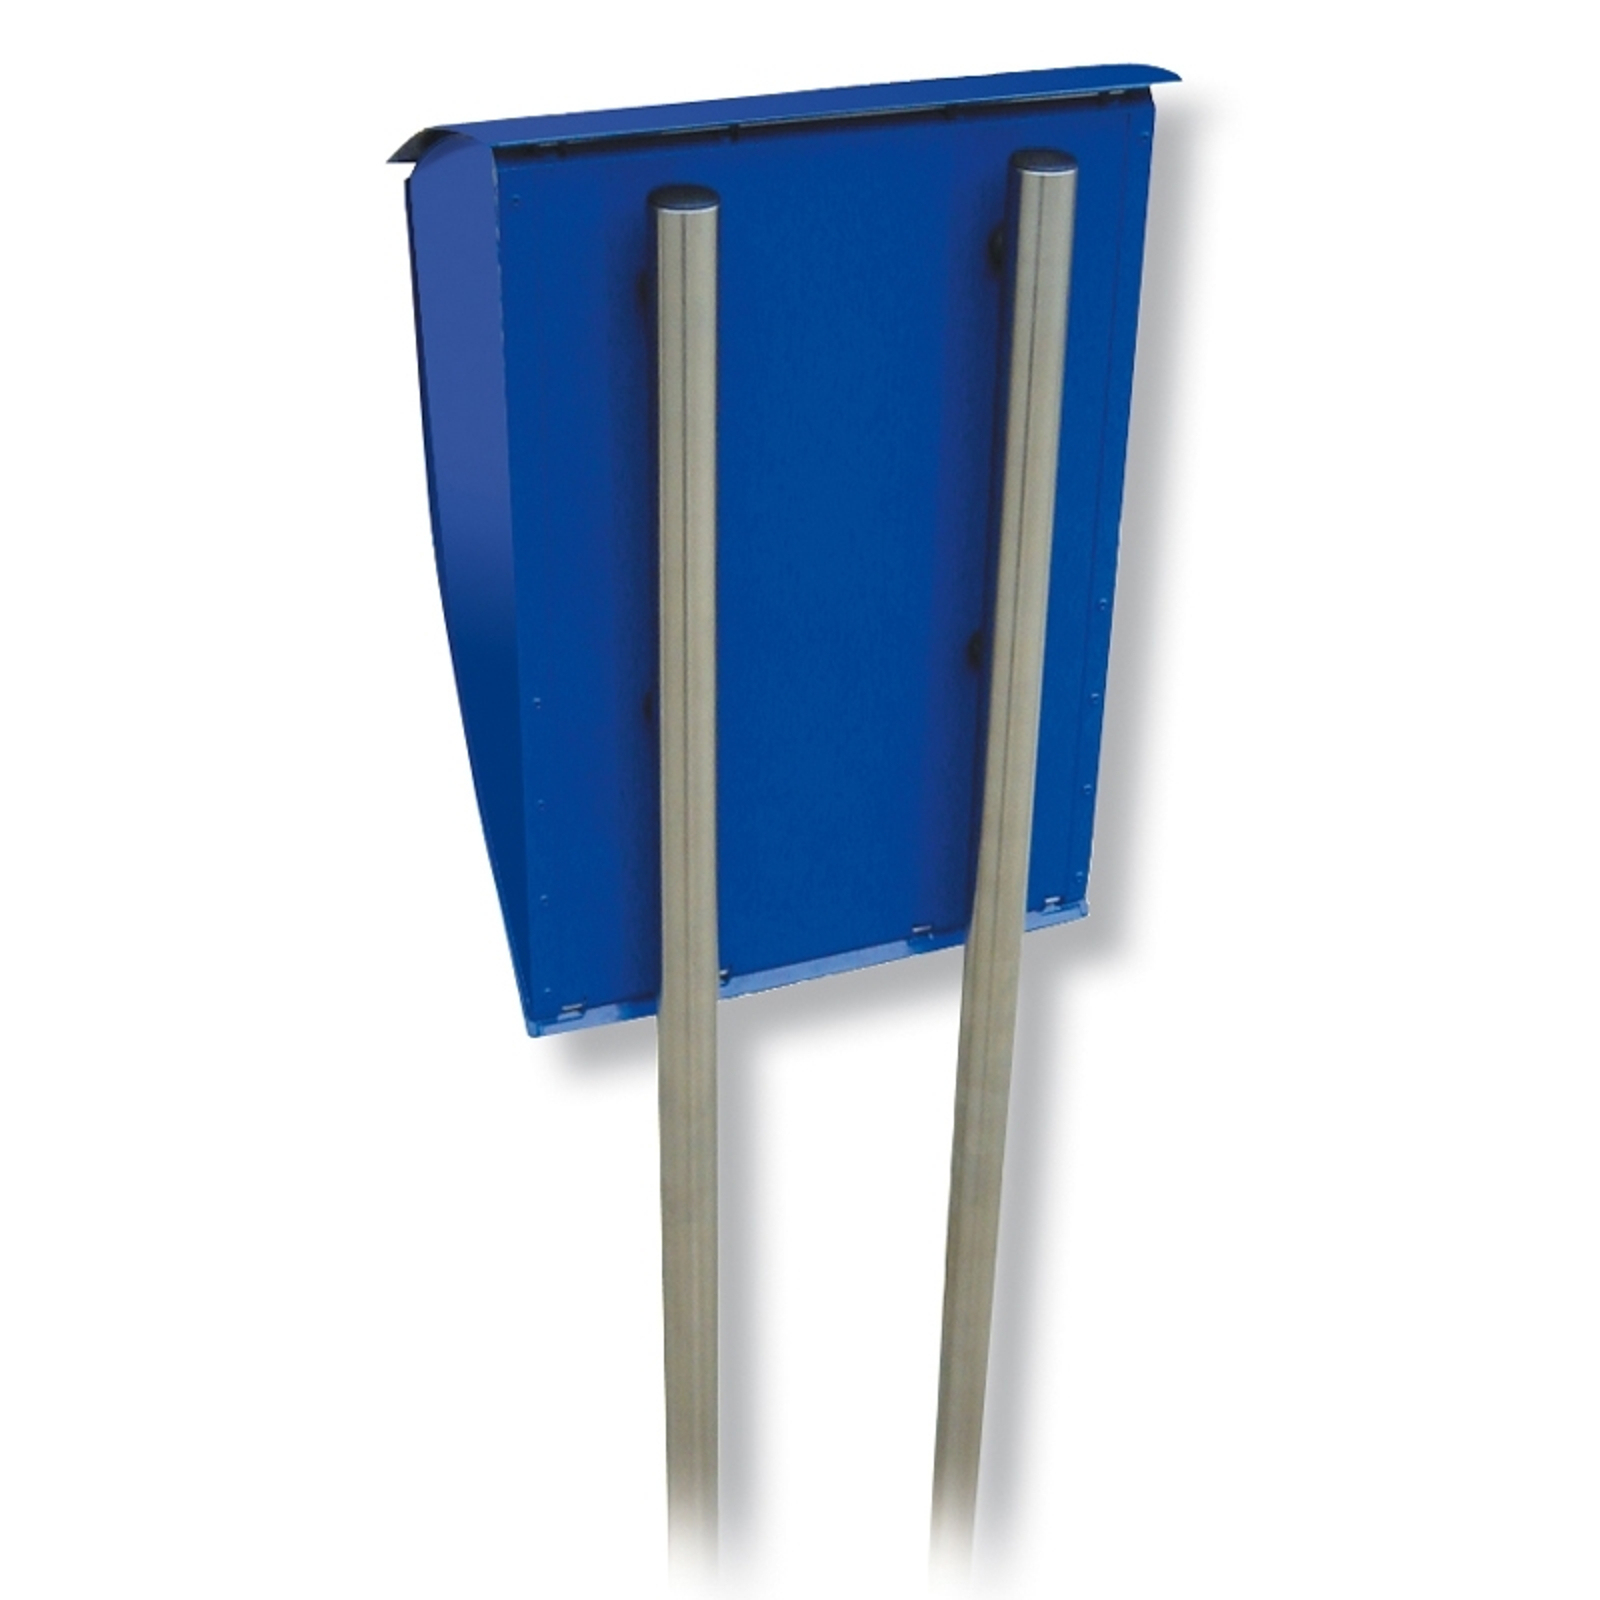 Letter box stand Universal 150, stainless steel_1532121_1